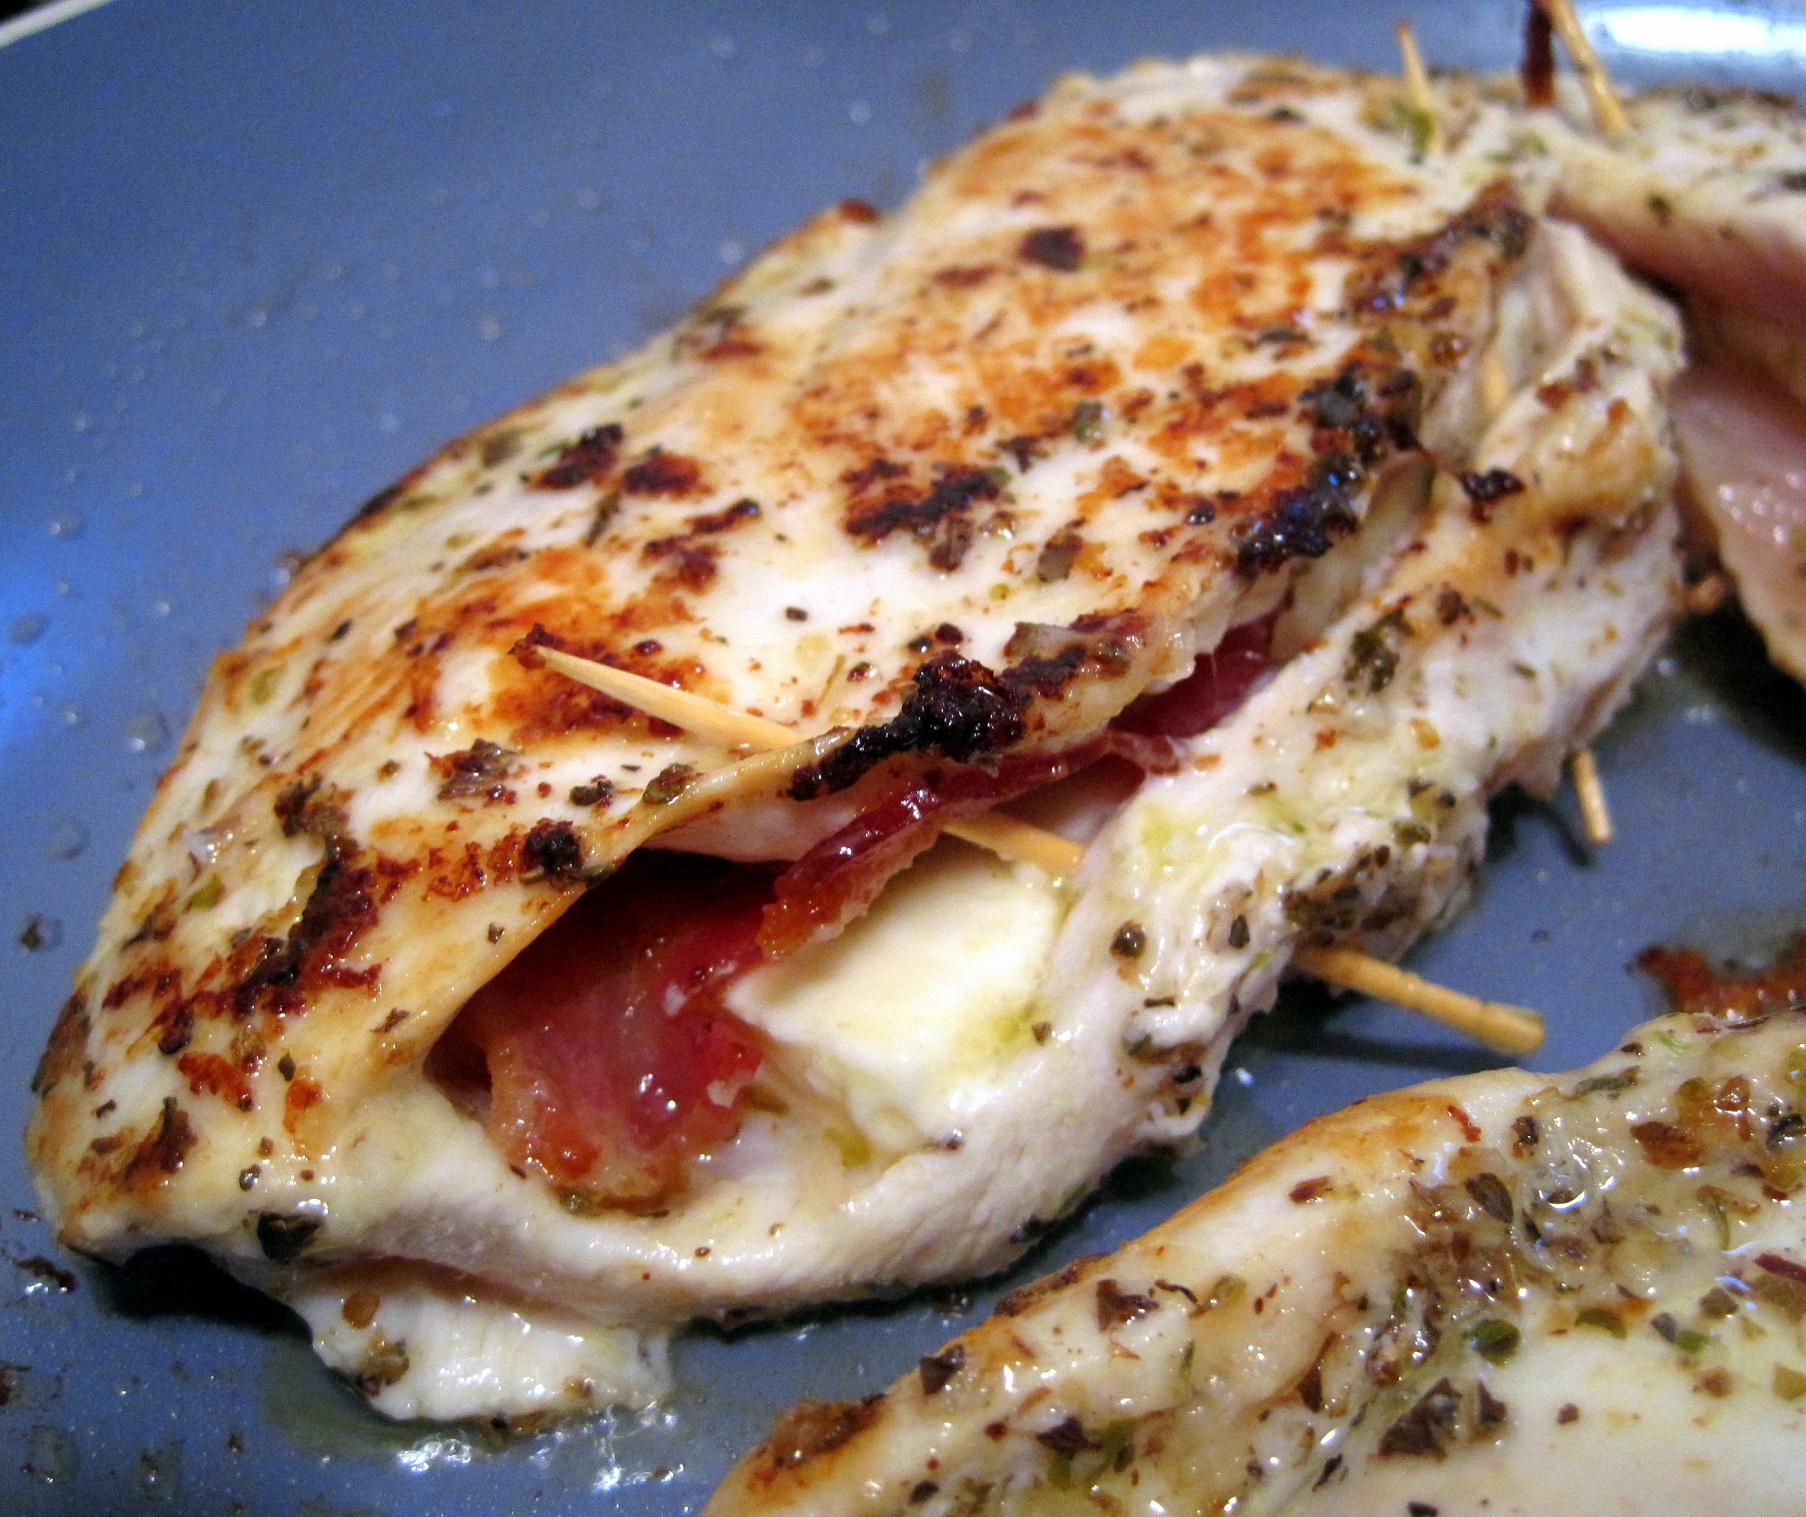 ... stuffed with beer cheese tasty feta cheese and bacon stuffed breasts